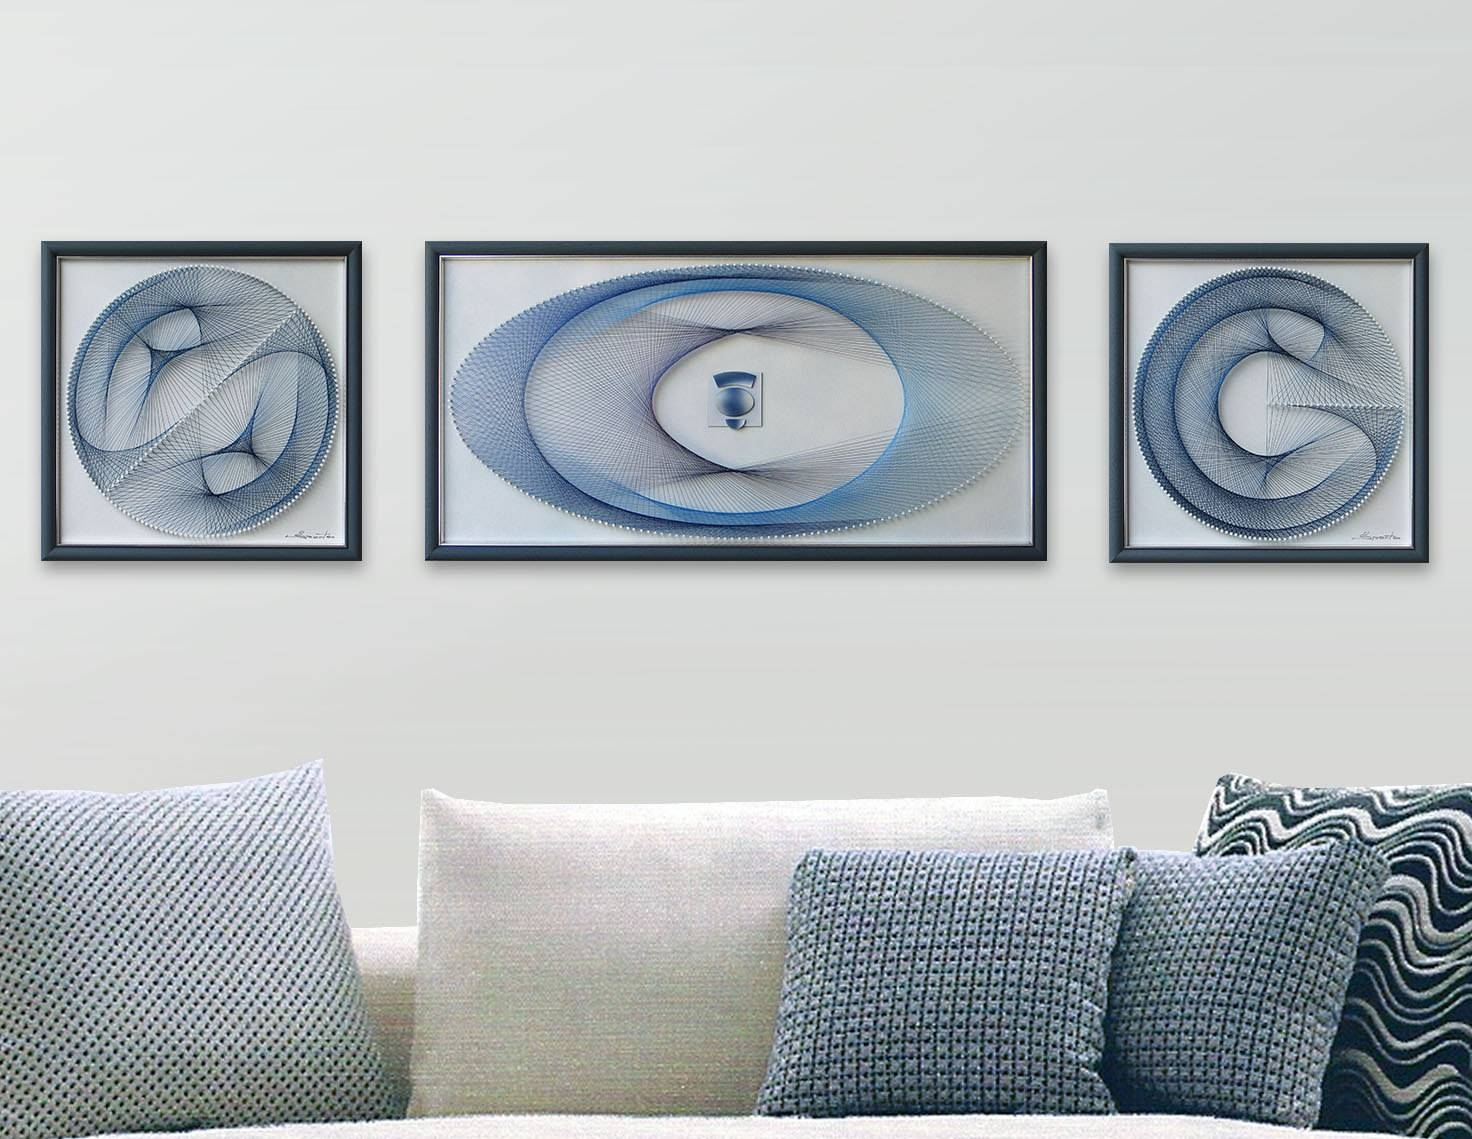 String Art Set 3D Framed Art Abstract Wall Art Beautiful Pertaining To Latest Abstract Wall Art 3D (View 17 of 20)